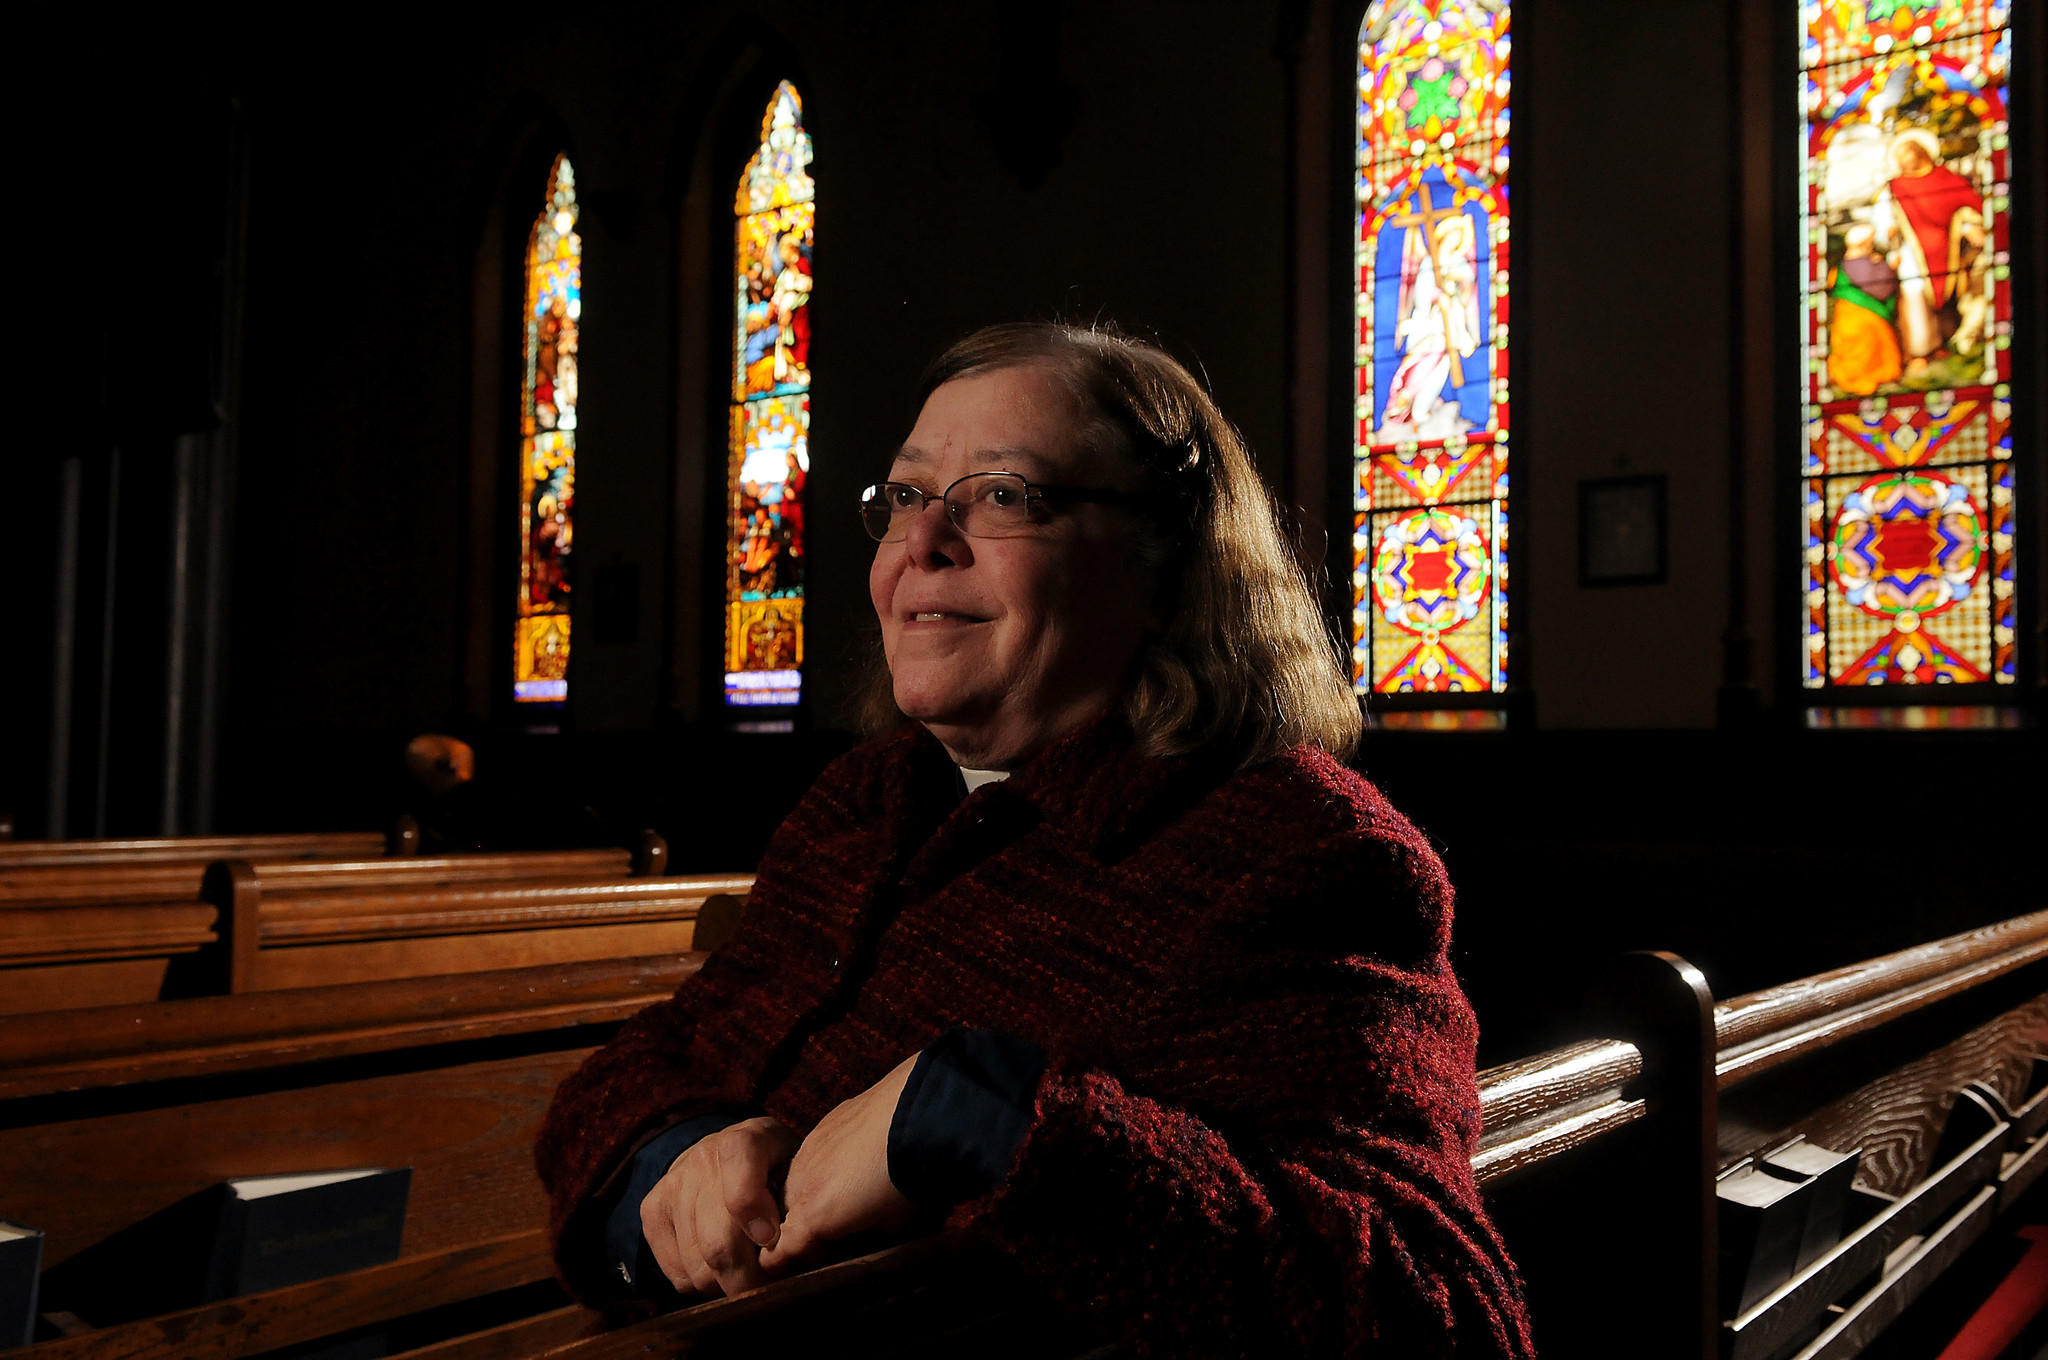 Middletown, CT 02/21/14 Church of the Holy Trinity Pastor Margaret Minnick is retiring March 2 after 18 years. She has been an advocate for the homeless and the elderly, and was a major force in Main Street revitalization efforts in the 1990s. Photo by JOHN WOIKE | woike@courant.com hc-middletown-margaret-minnick-0222